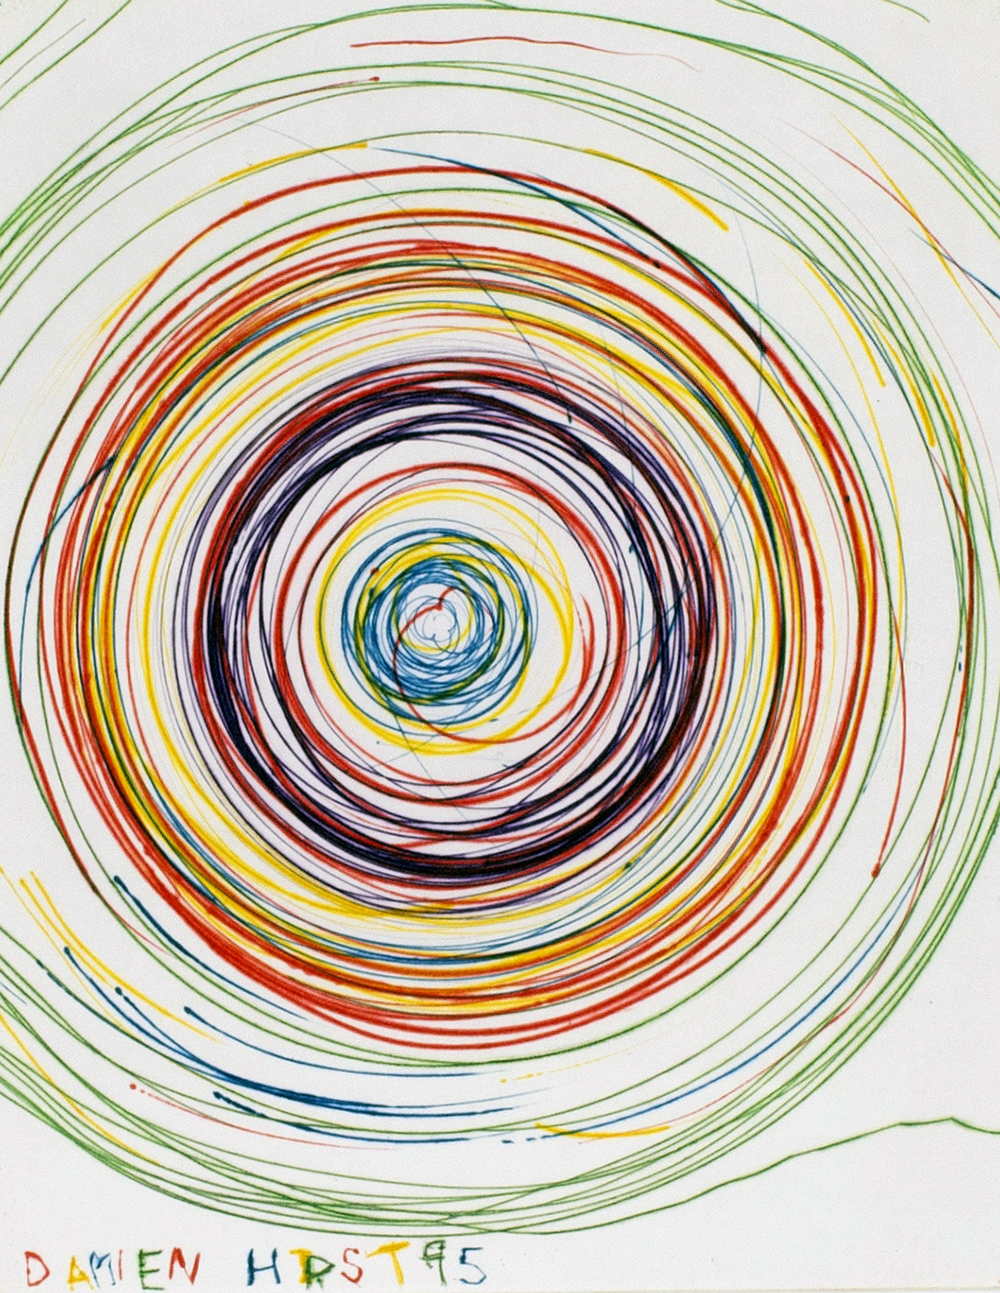 Damien Hirst, Beautiful exotic stretching etchy spinning void etching, 1995. (Koldnålsradering, 44 x 37 cm, BORCH Editions).